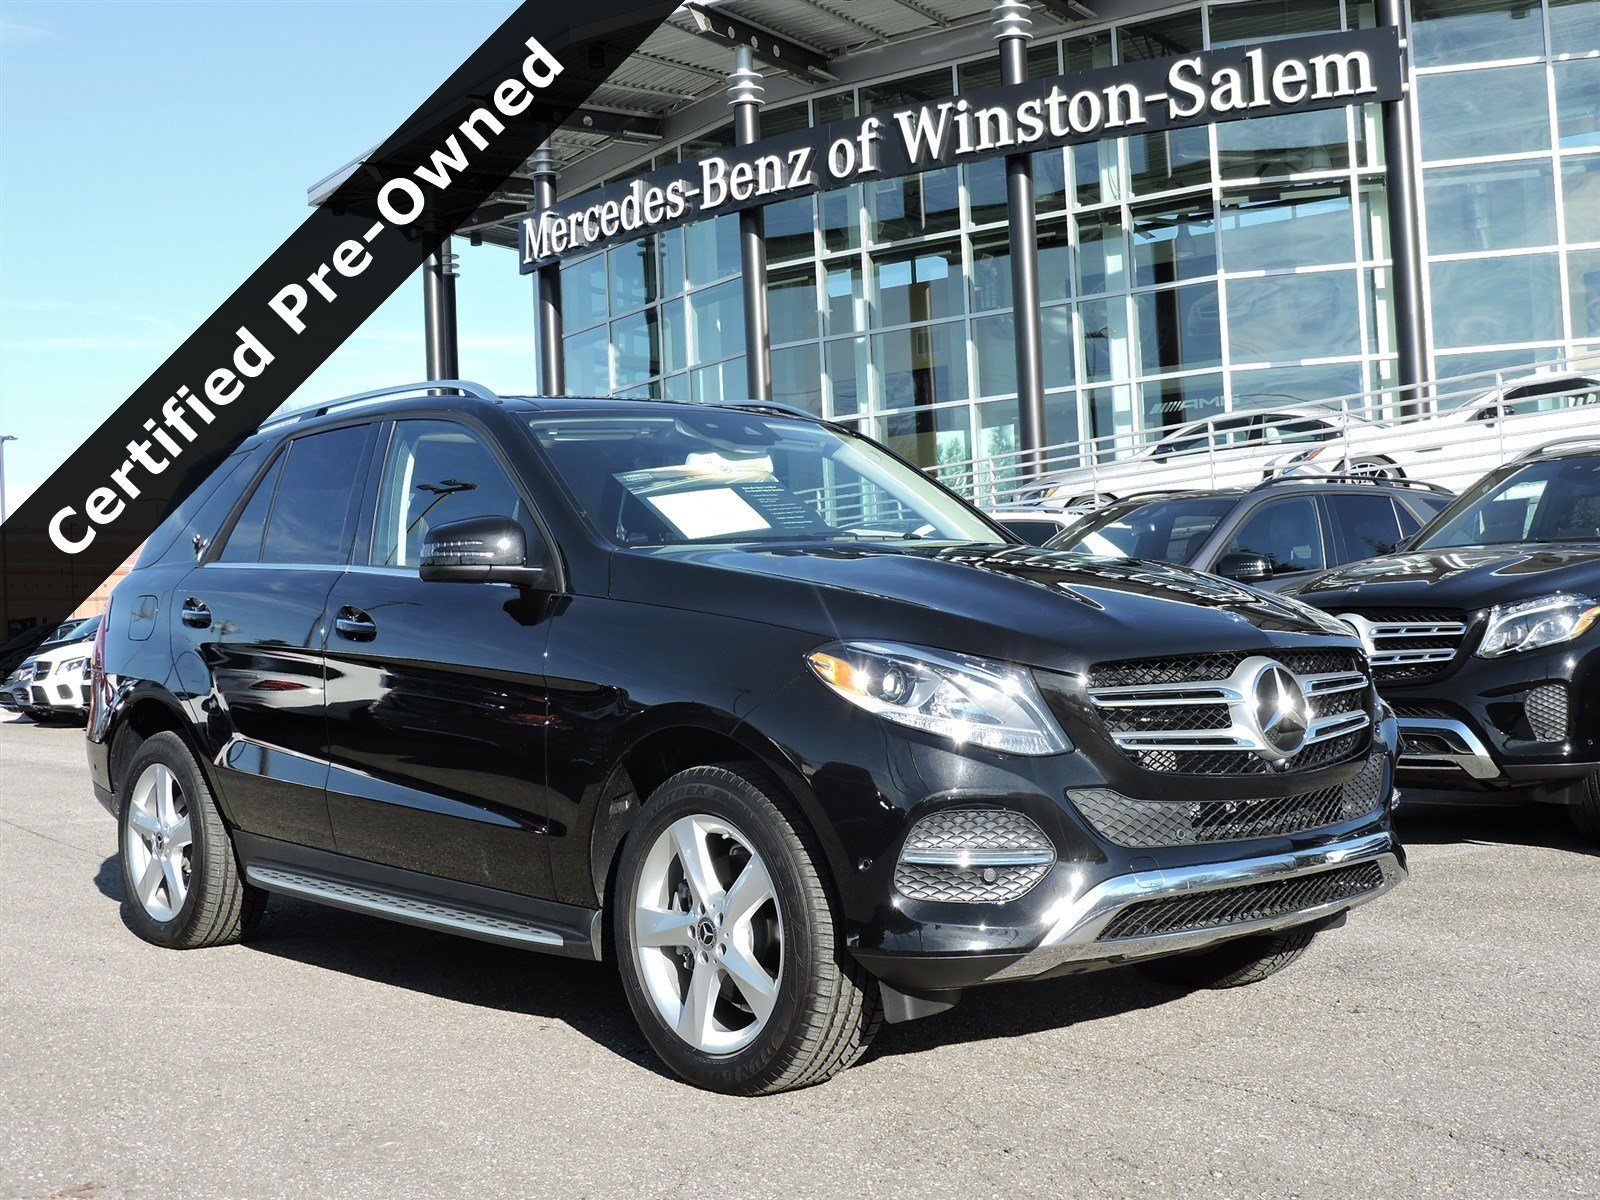 2019 mercedes benz gle 350 for sale in winston salem nc mercedes benz of winston salem. Black Bedroom Furniture Sets. Home Design Ideas